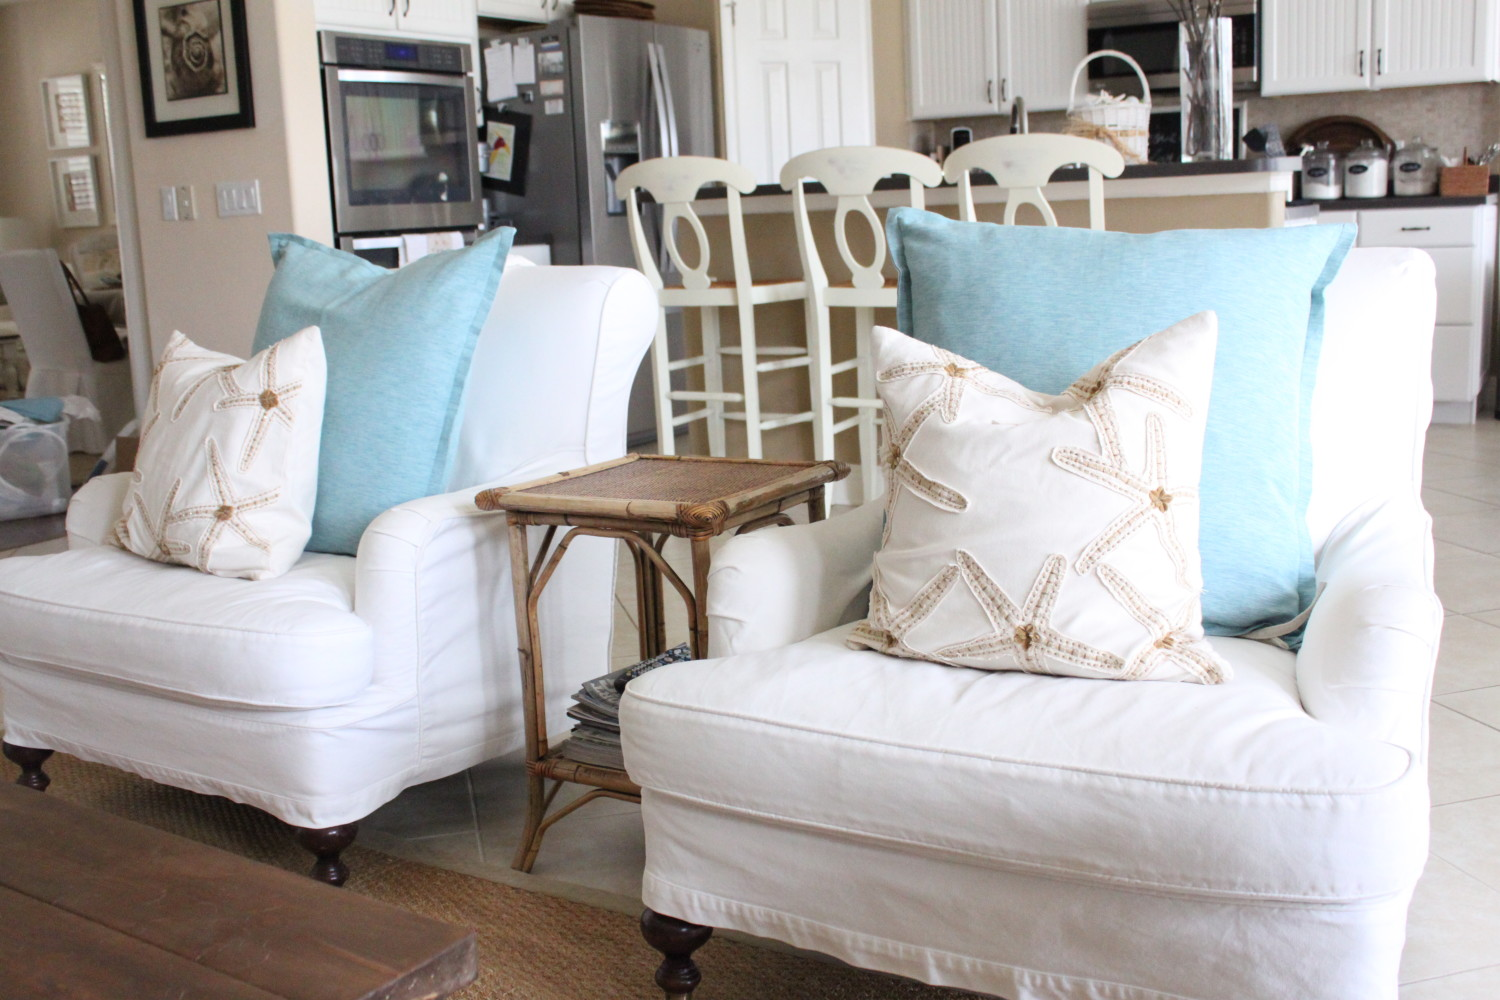 ... And Club Chairs  This Instantly Brightened The Room! They Look  Especially Fabulous When Accented With My Khaki And White Embroidered  Starfish Pillows.